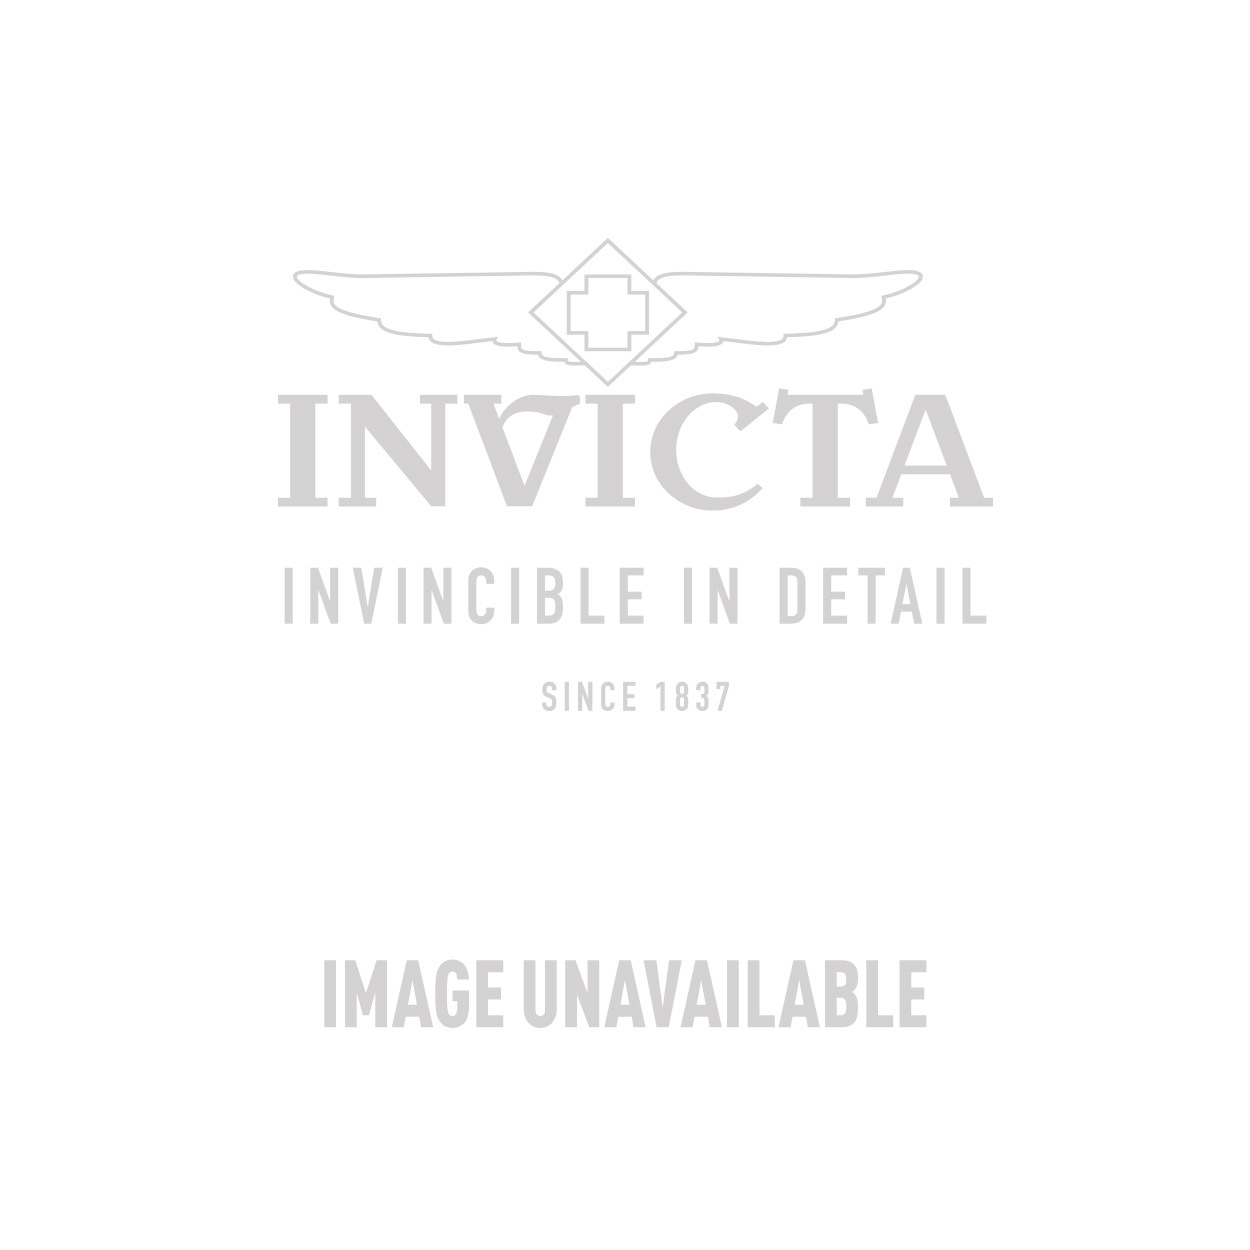 Invicta S1 Rally Quartz Watch - Black, Stainless Steel case with Black, Blue tone Leather, Polyurethane band - Model 19176